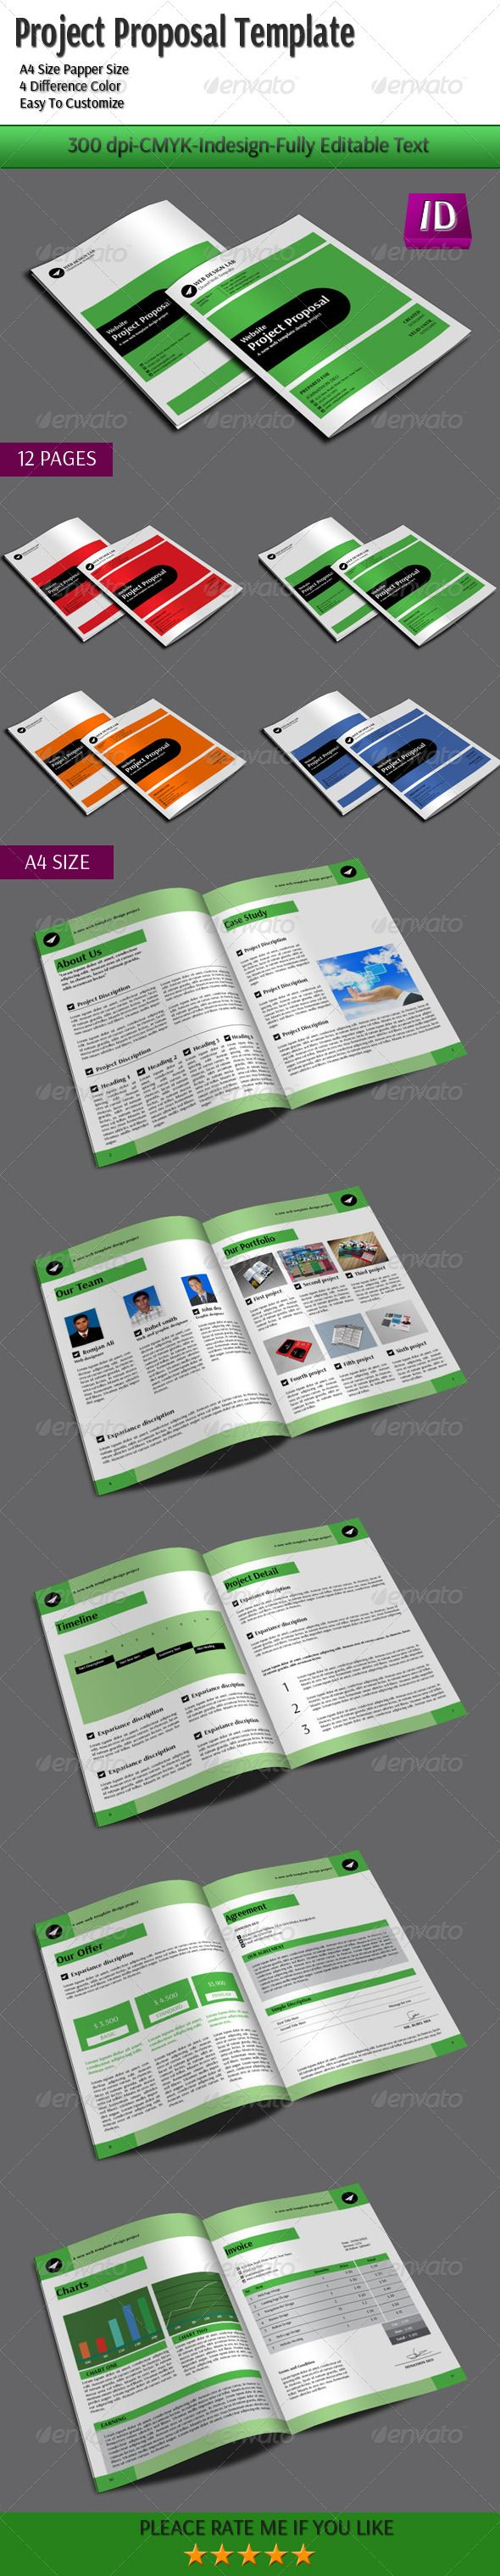 best ideas about proposal format business project proposal template indesign indd 12 pages proposal indesign proposal available here